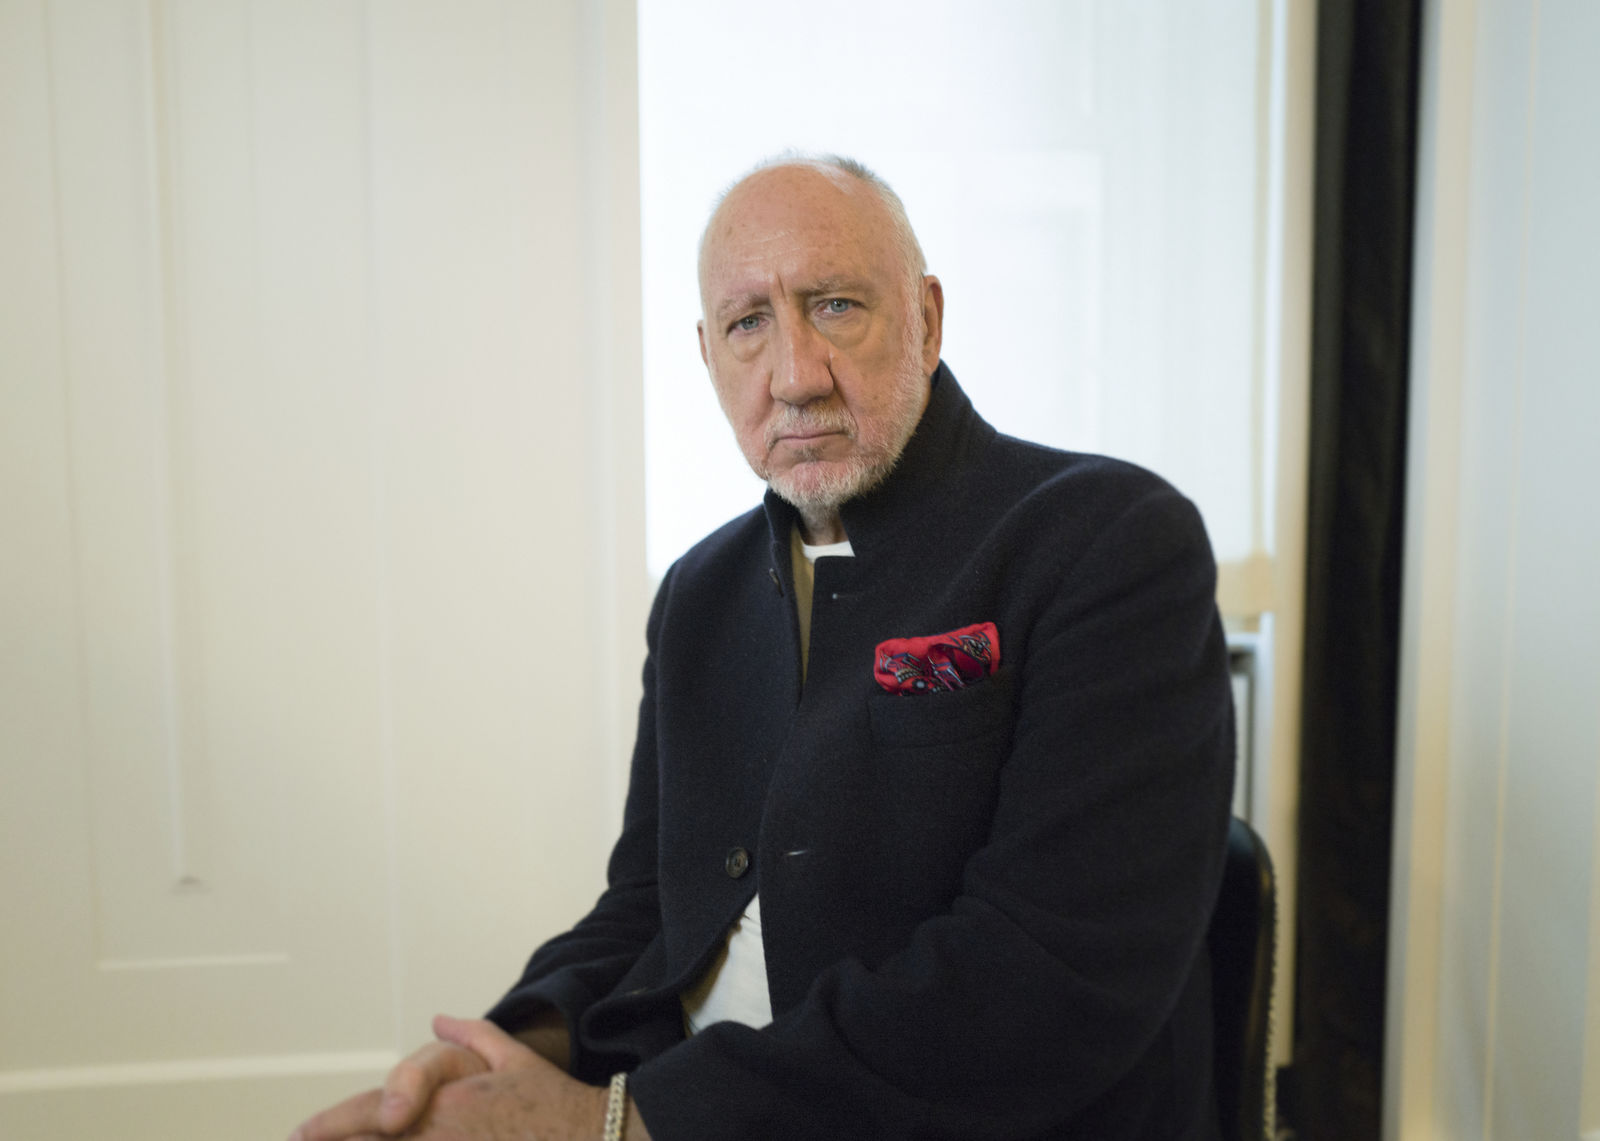 "This Oct. 31, 2019 photo shows author-singer Pete Townshend posing for a portrait in New York to promote his debut novel ""The Age of Anxiety."" Townshend, a member of the British rock band The Who, said the band plans to return to Cincinnati for the first time since the 1979 tragedy where 11 fans died in a frantic stampede at their concert. (Photo by Matt Licari/Invision/AP)"